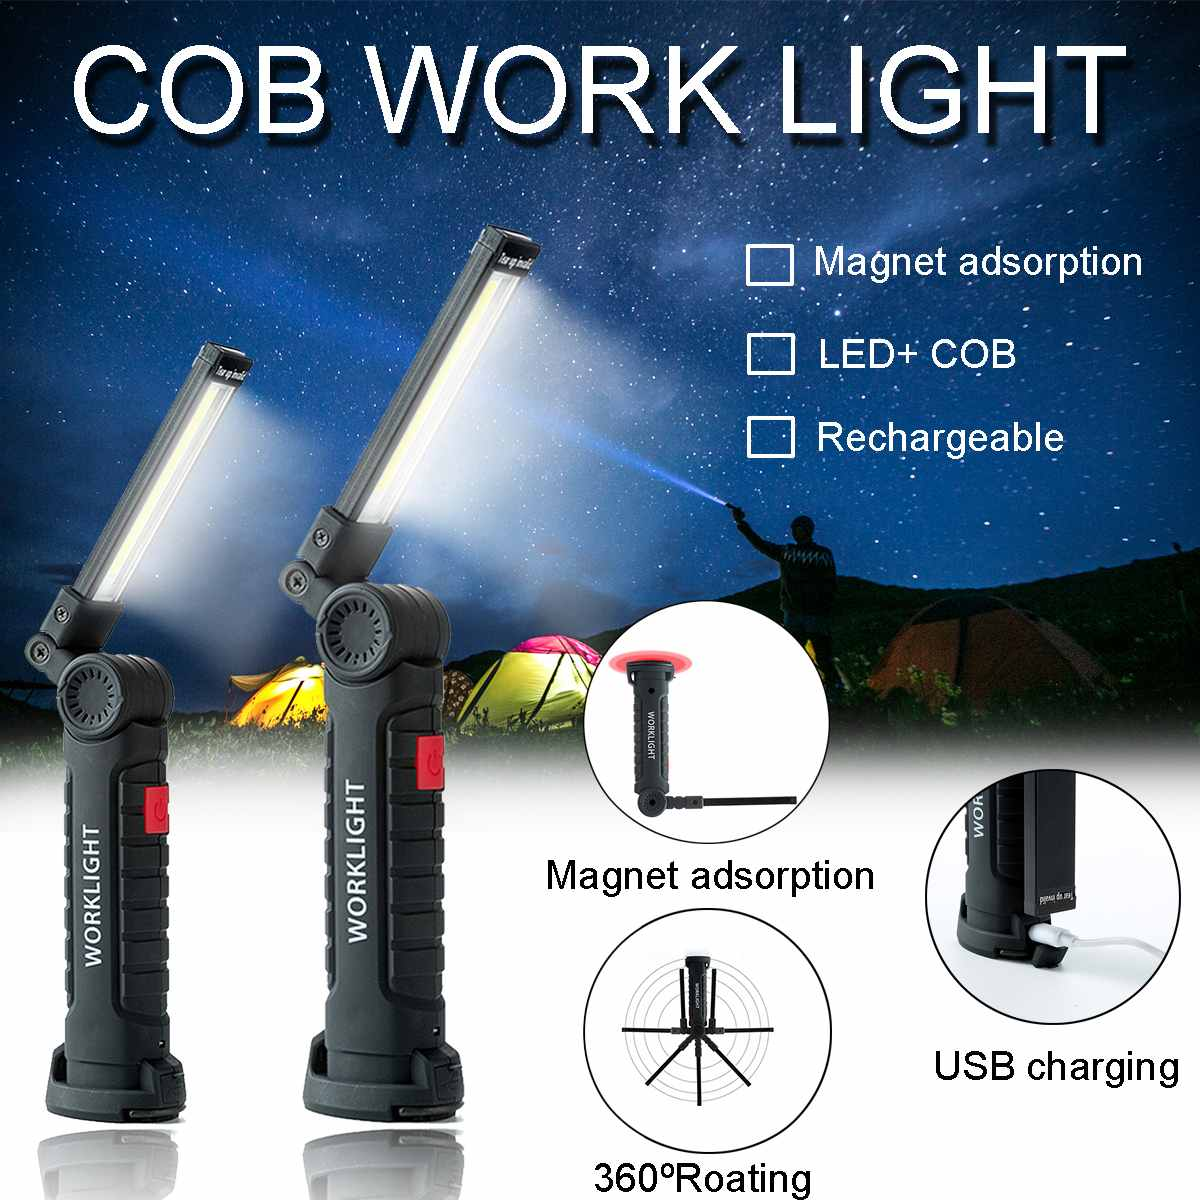 10W COB LED Flashlight USB Rechargeable Magnetic Torch Flexible Cordless Worklight Portable Spotlights Outdoor Emergency Lights